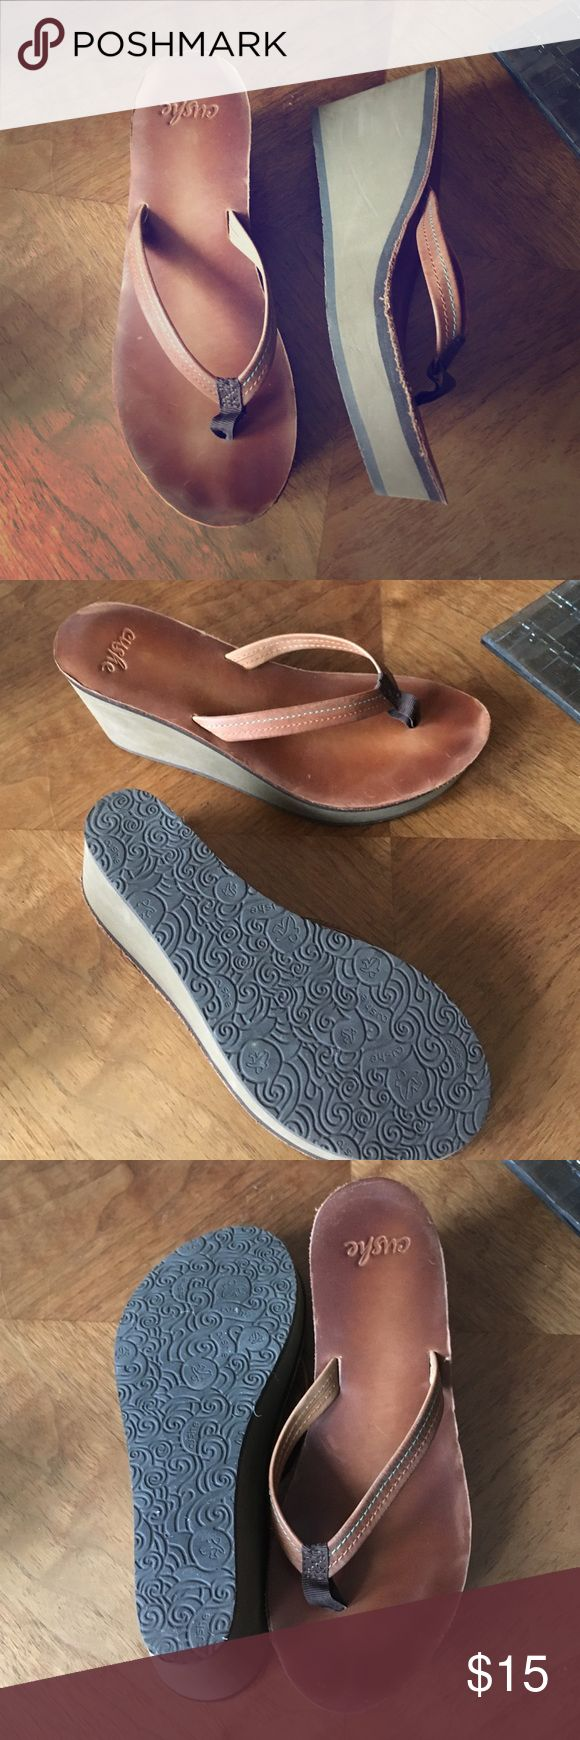 "Leather Cushe FlipFlops The Wedge Heel gives these Casual Sandals a Stylish Feel. They've been worn only a few times. Heel is 3"". Cushe Shoes Sandals"